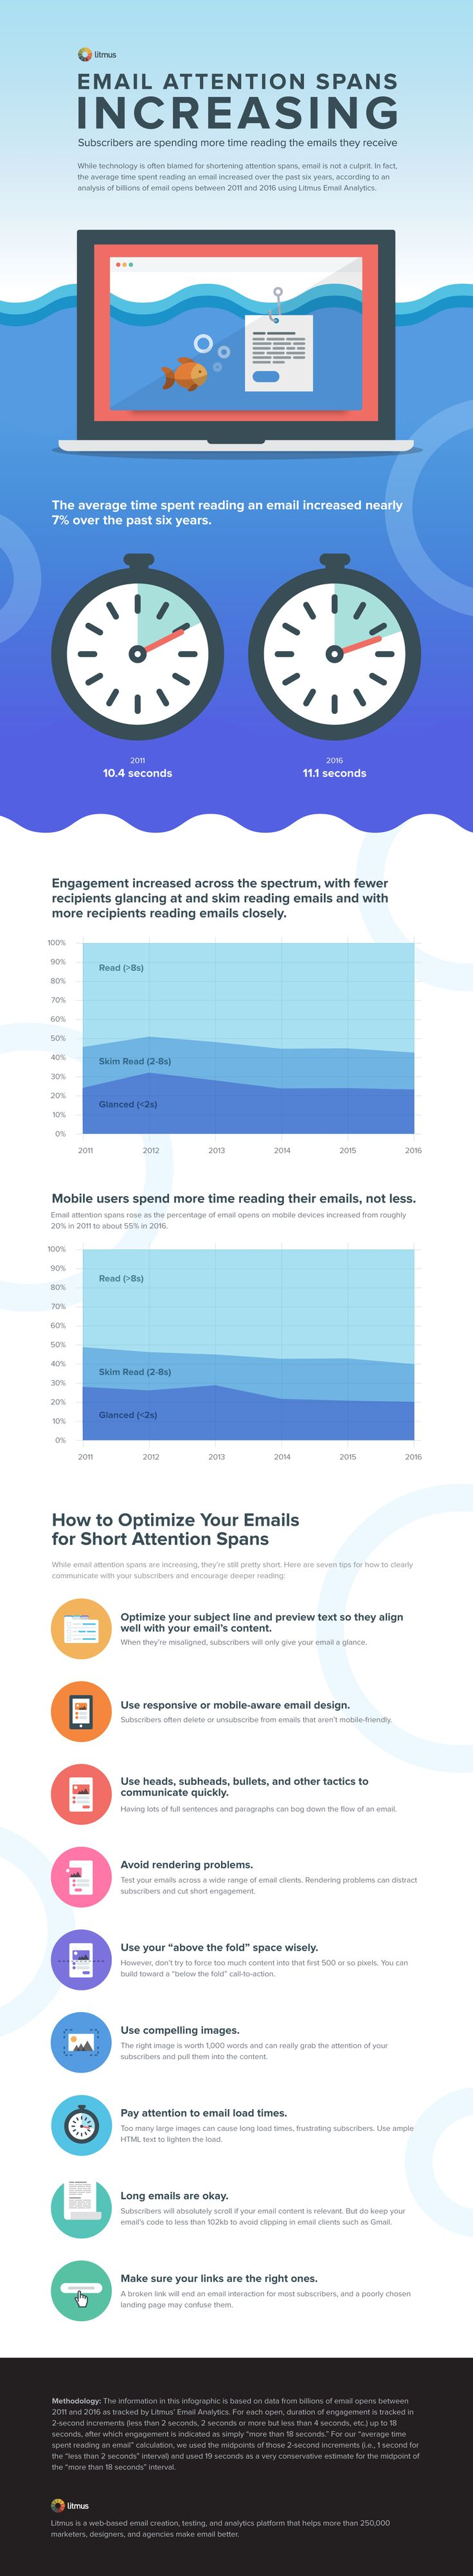 Email Attention Spans Increasing [Infographic] – Litmus Software, Inc.